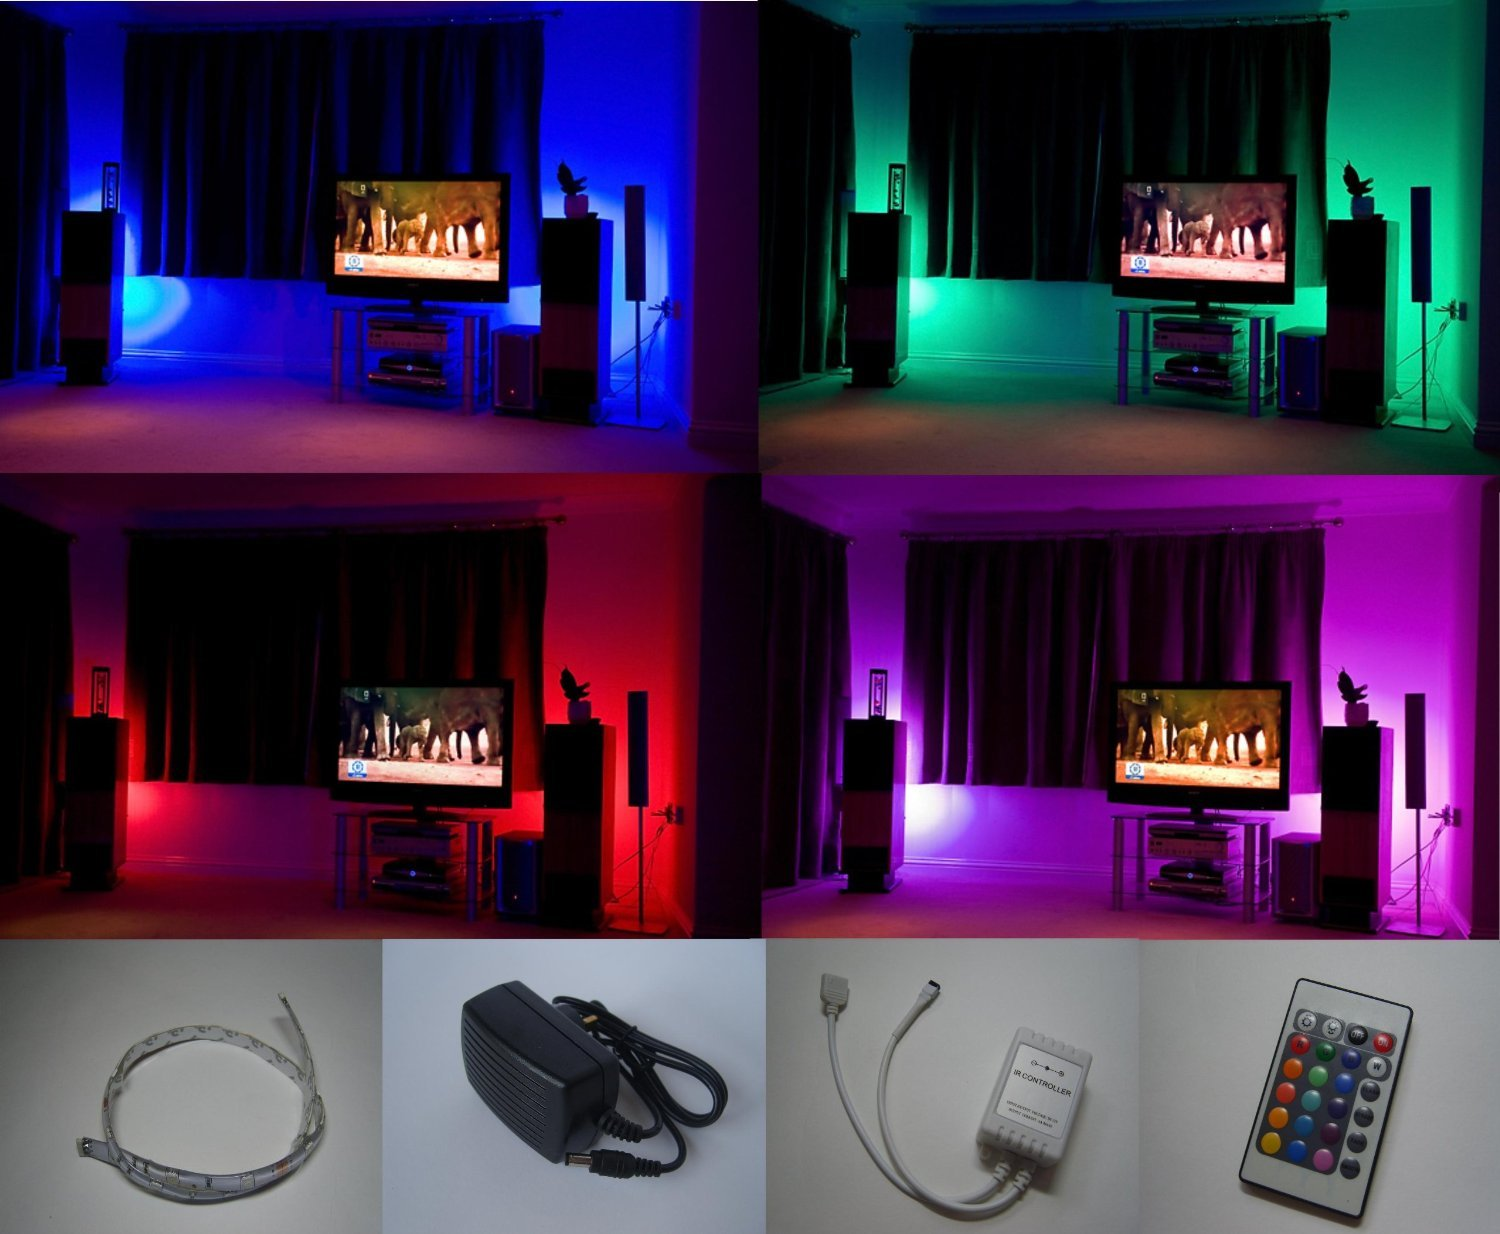 Colour changing led mood light kit with ir remote control 4 x 500mm colour changing led mood light kit with ir remote control 4 x 500mm led strips amazon kitchen home aloadofball Images